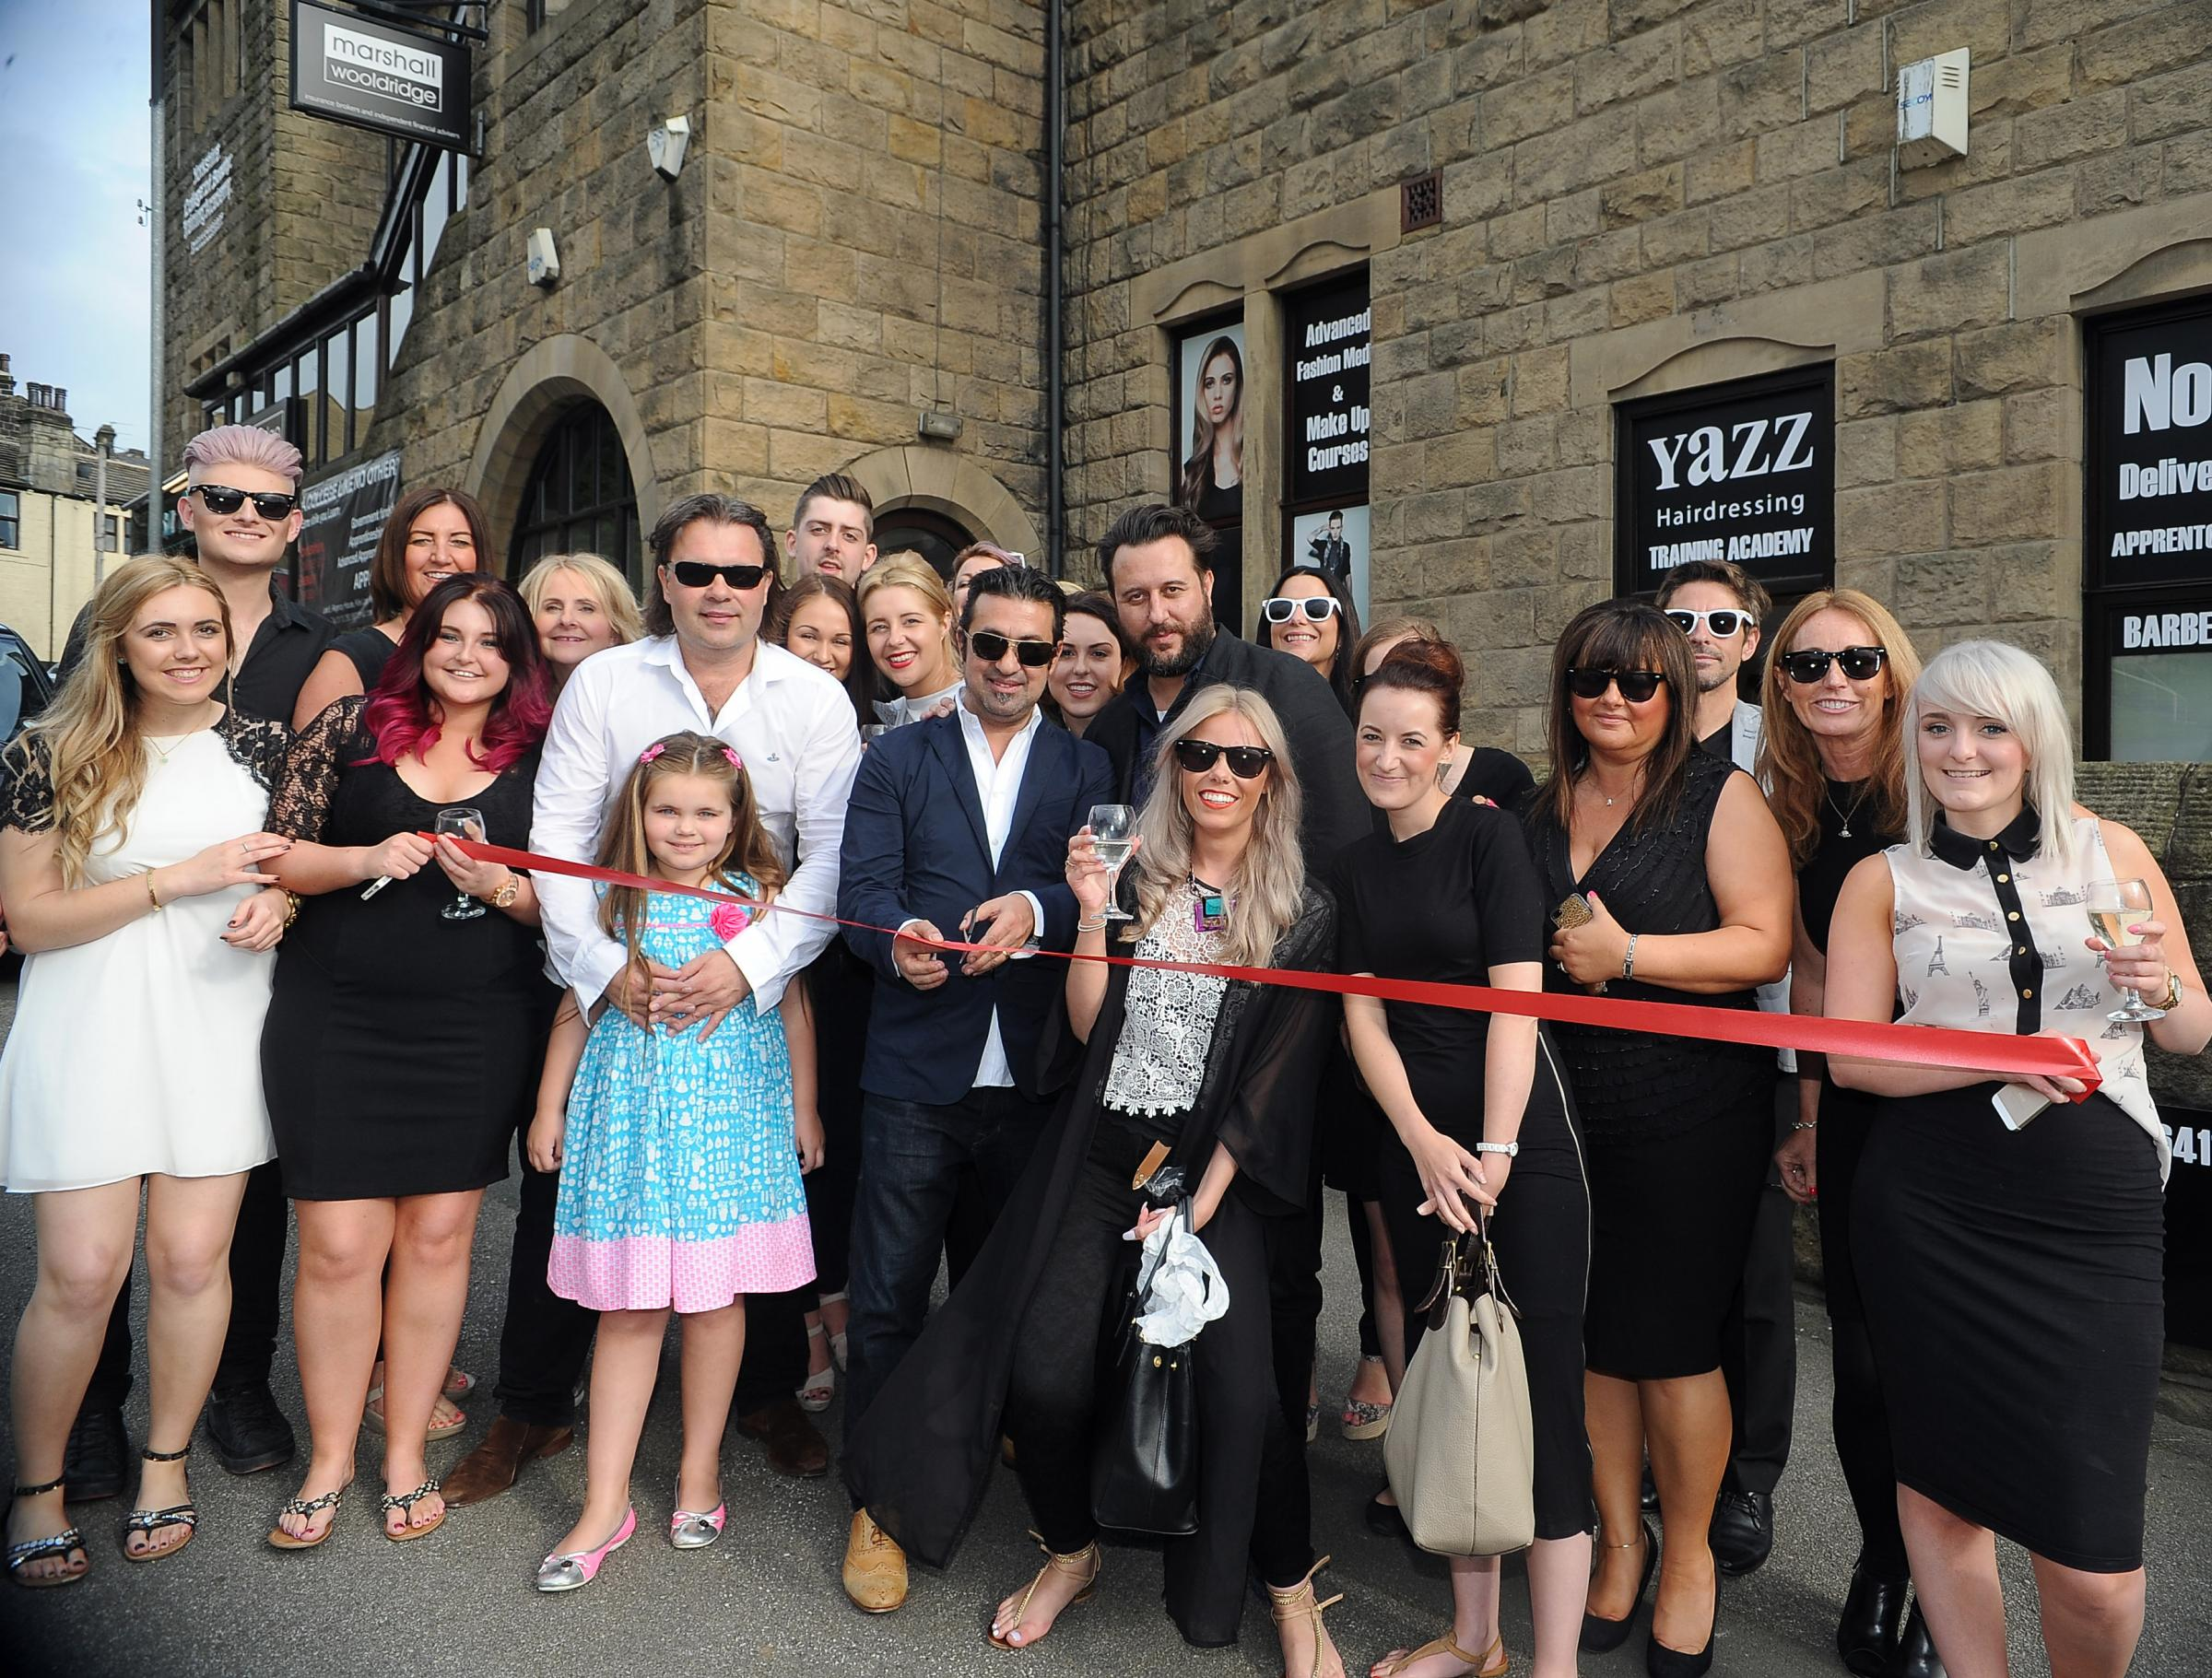 Salon owner Paul Shakeshaft (third from the left, front row) at the opening of his new academy